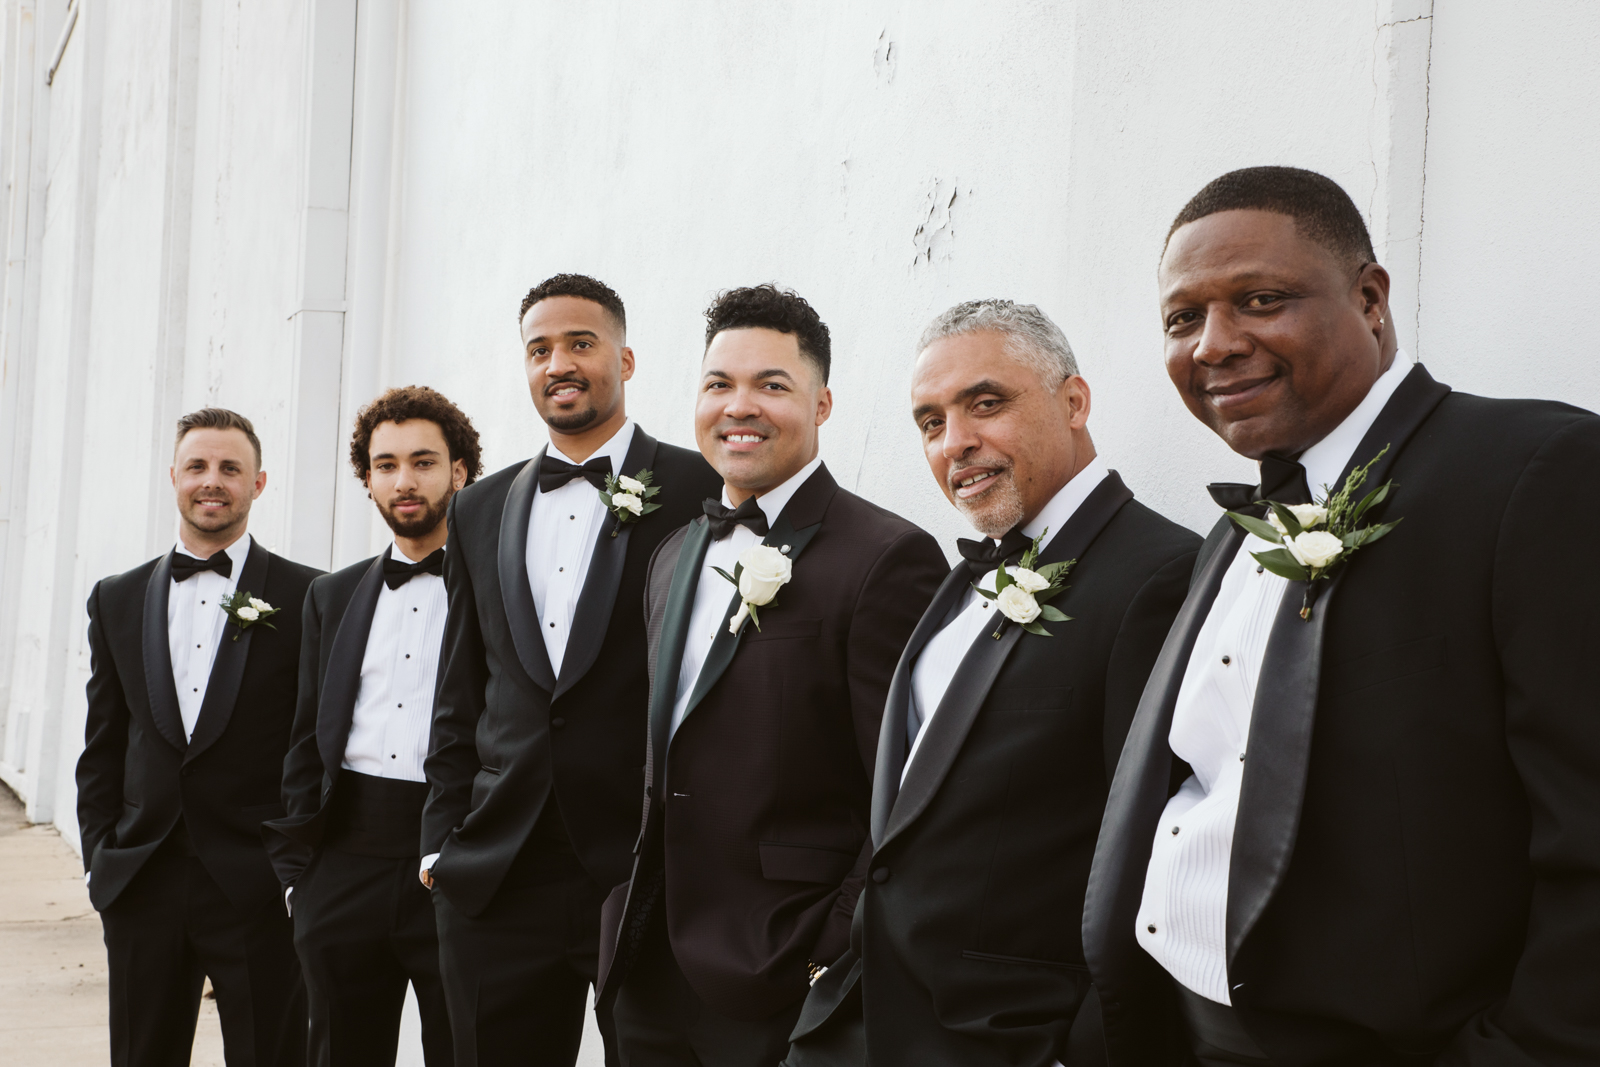 Destination wedding photographer Barcelona, groom party